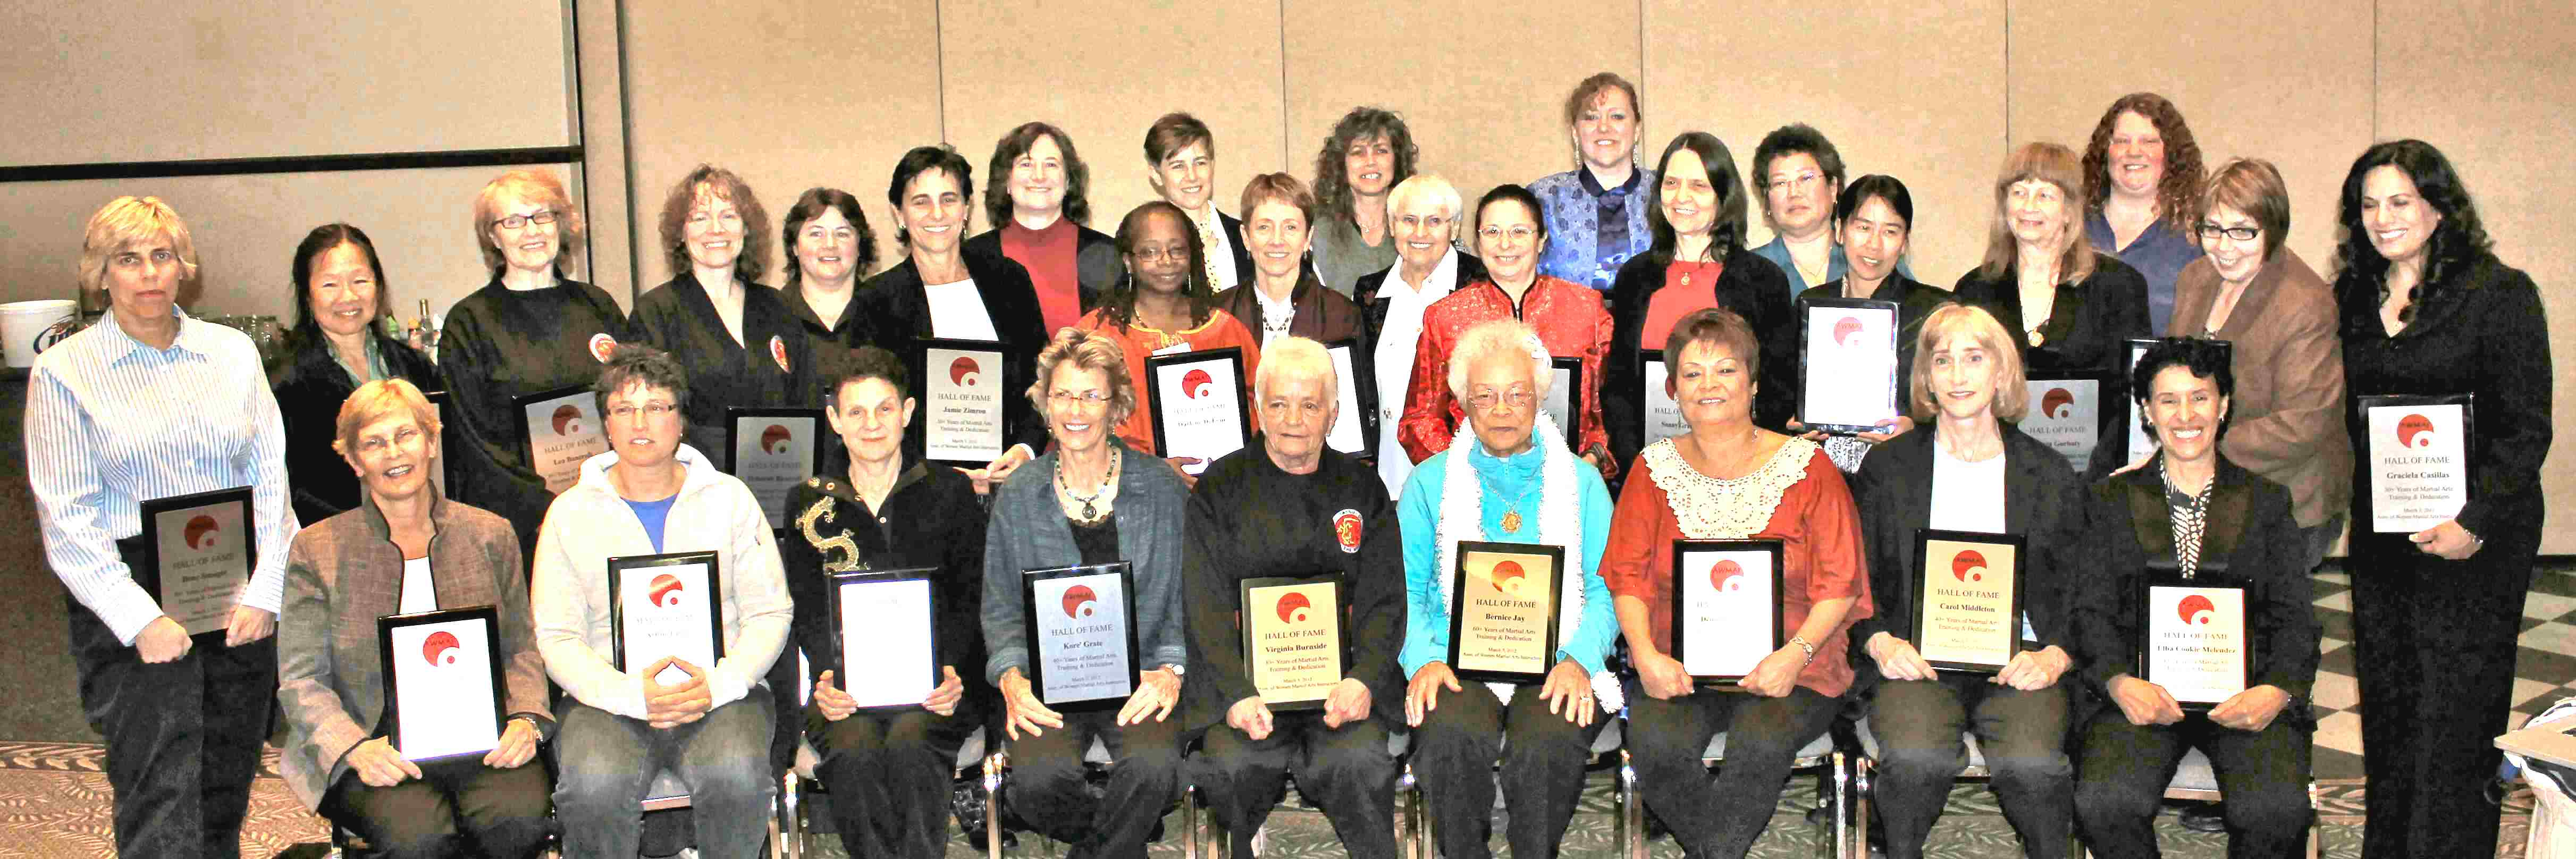 2012 AWMAI Hall of Fame recipients